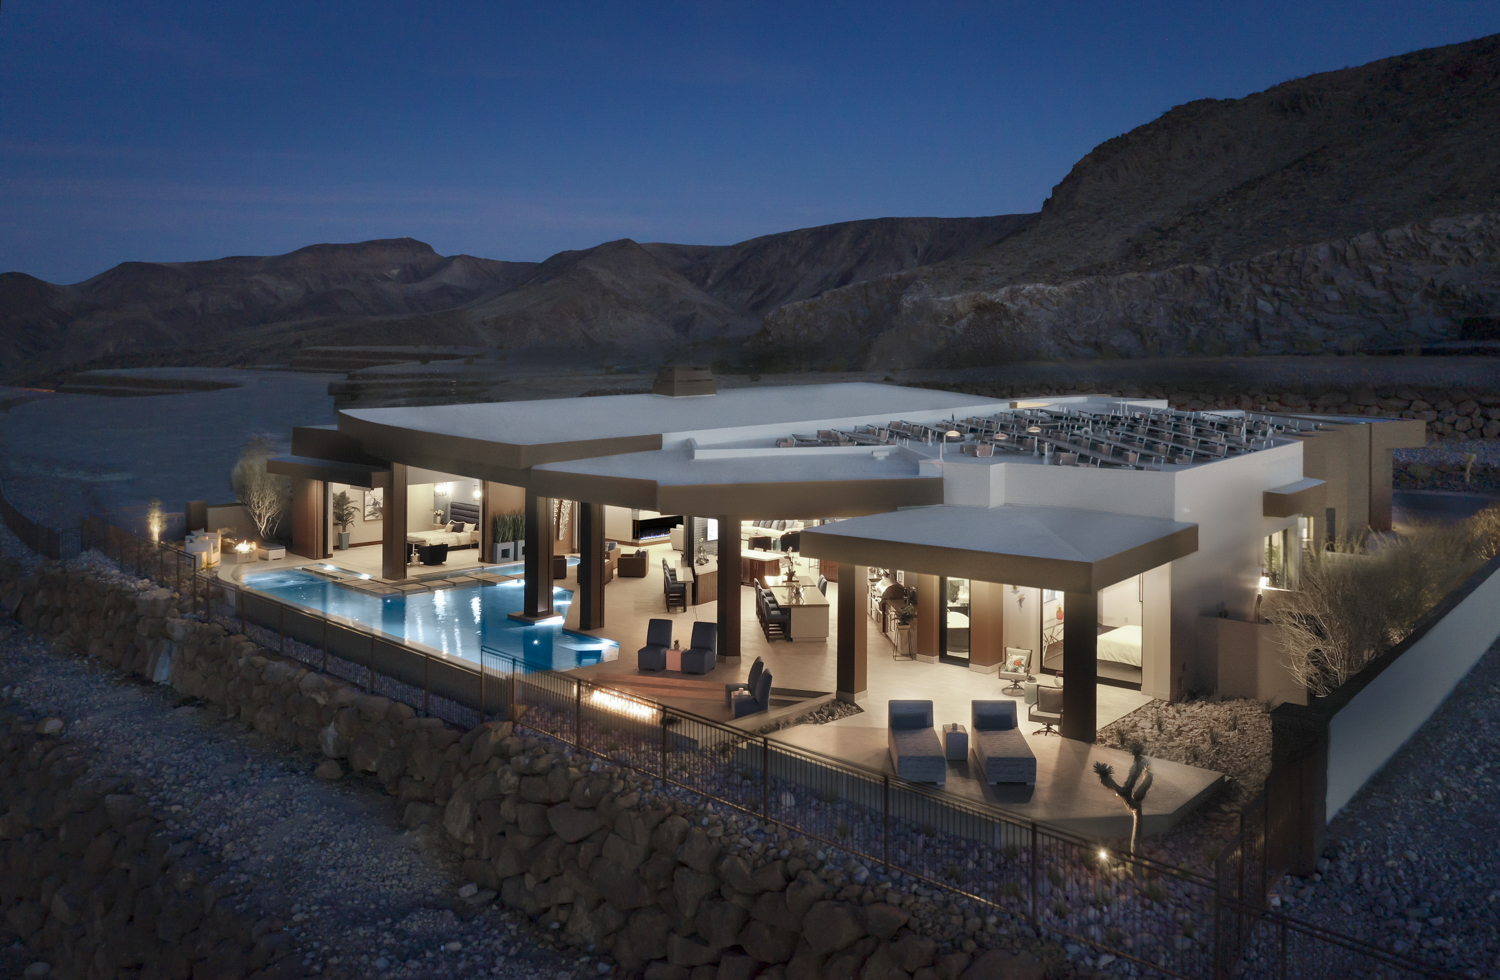 A sprawling contemporary home with a pool and wraparound deck is shown at night at the foot of a large mountain range in the desert.